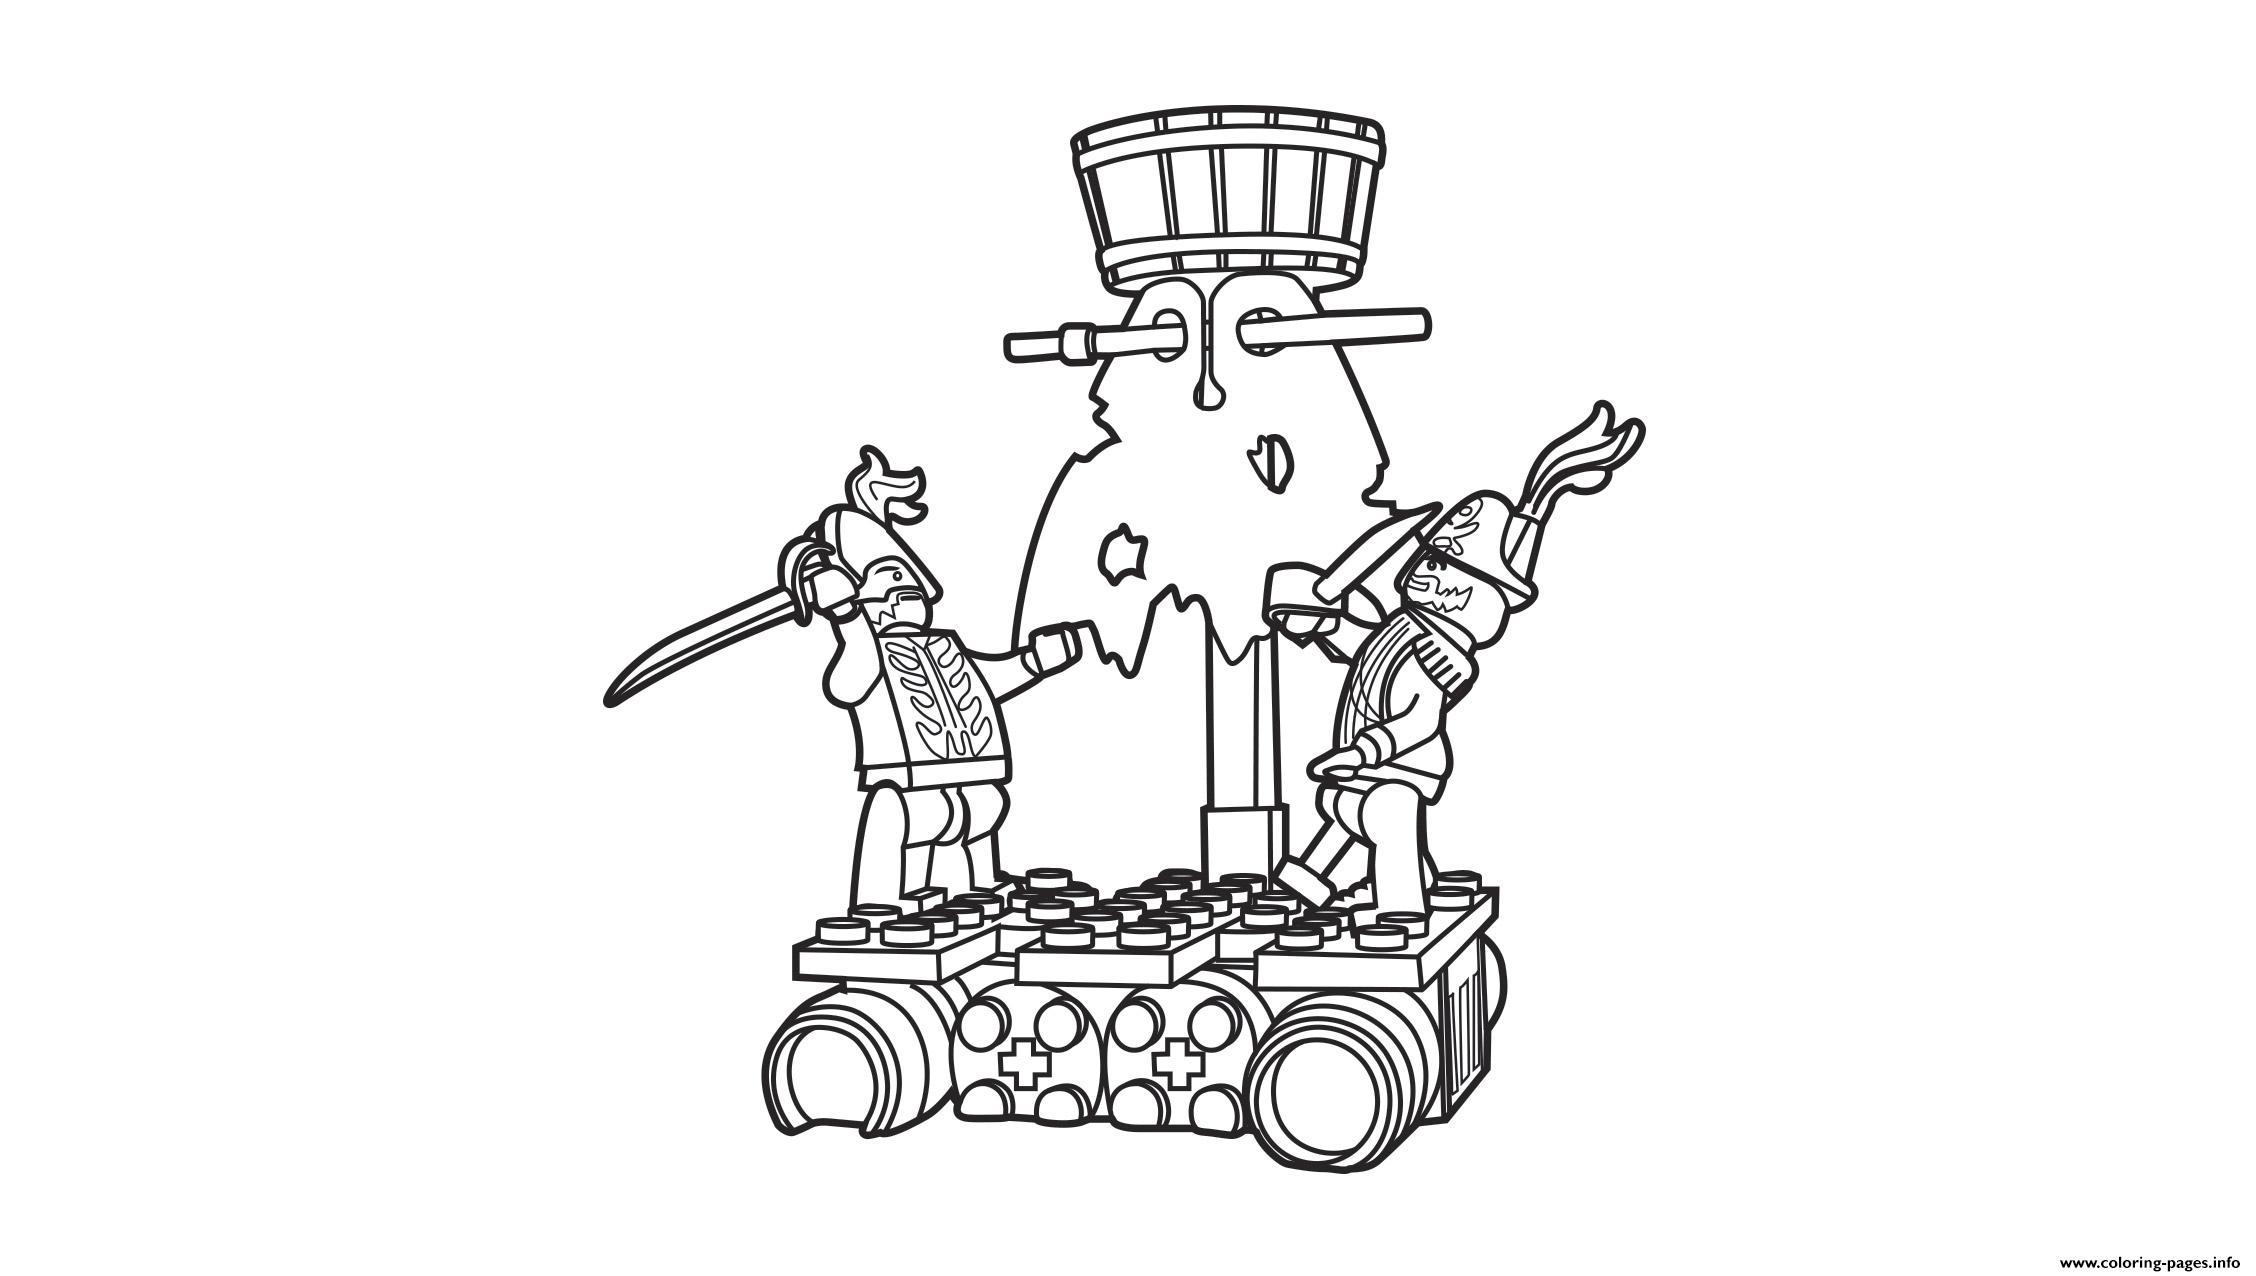 lego boat coloring page lego pirates destroy boat coloring pages printable coloring page lego boat